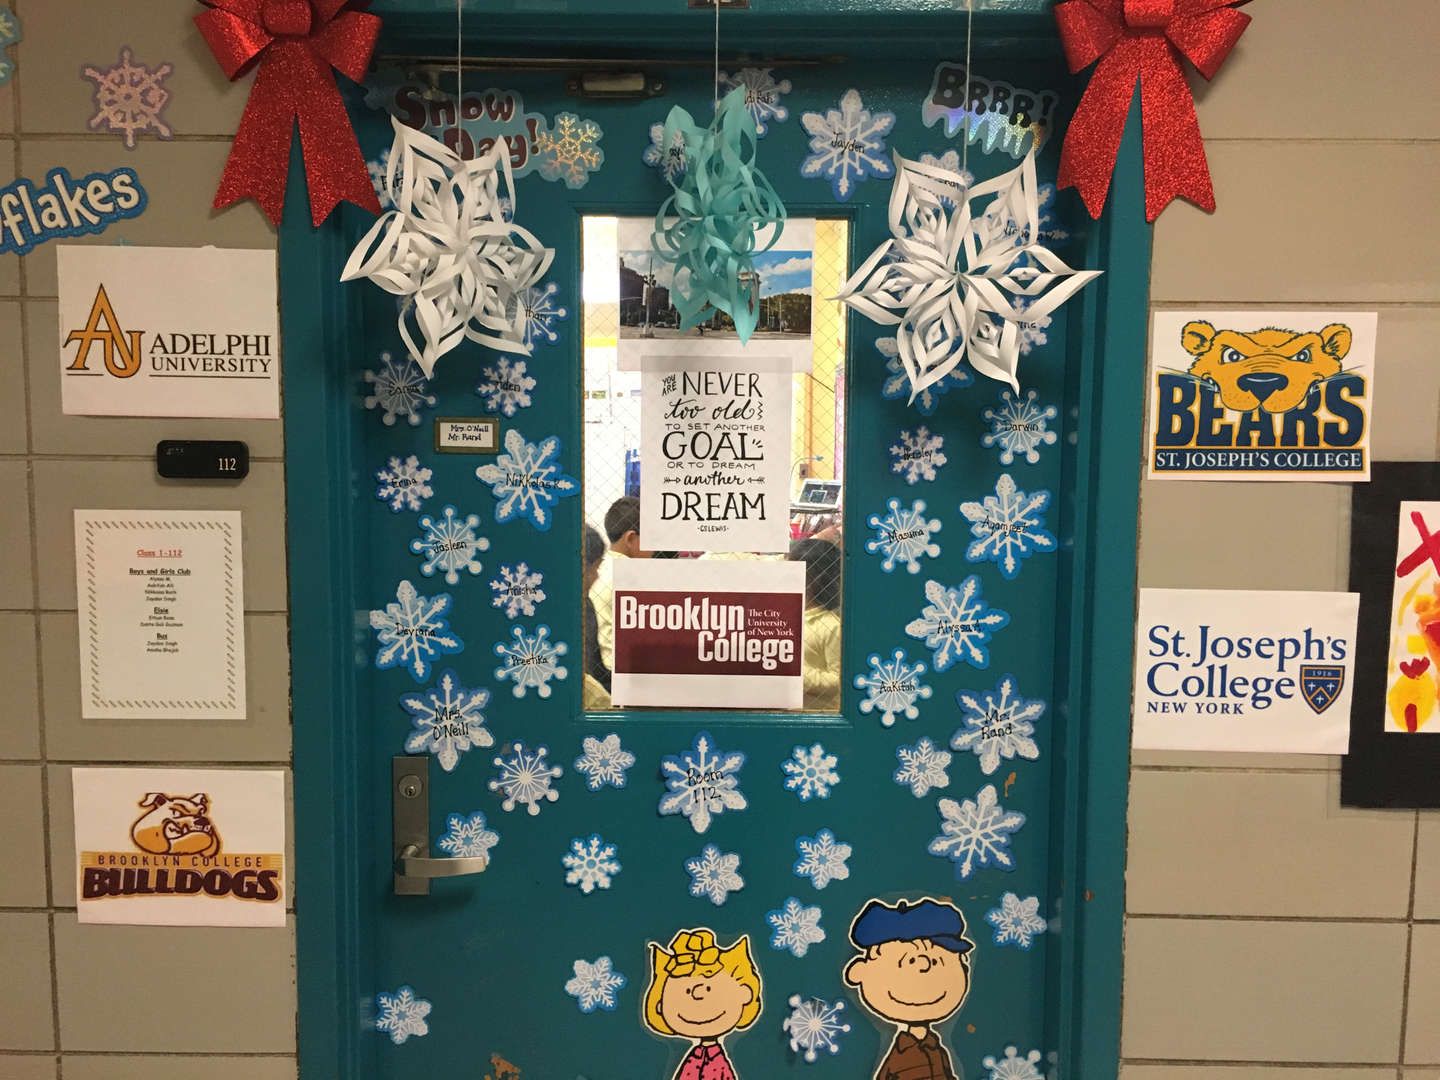 A door decorated with snowflakes and Charlie Brown decals